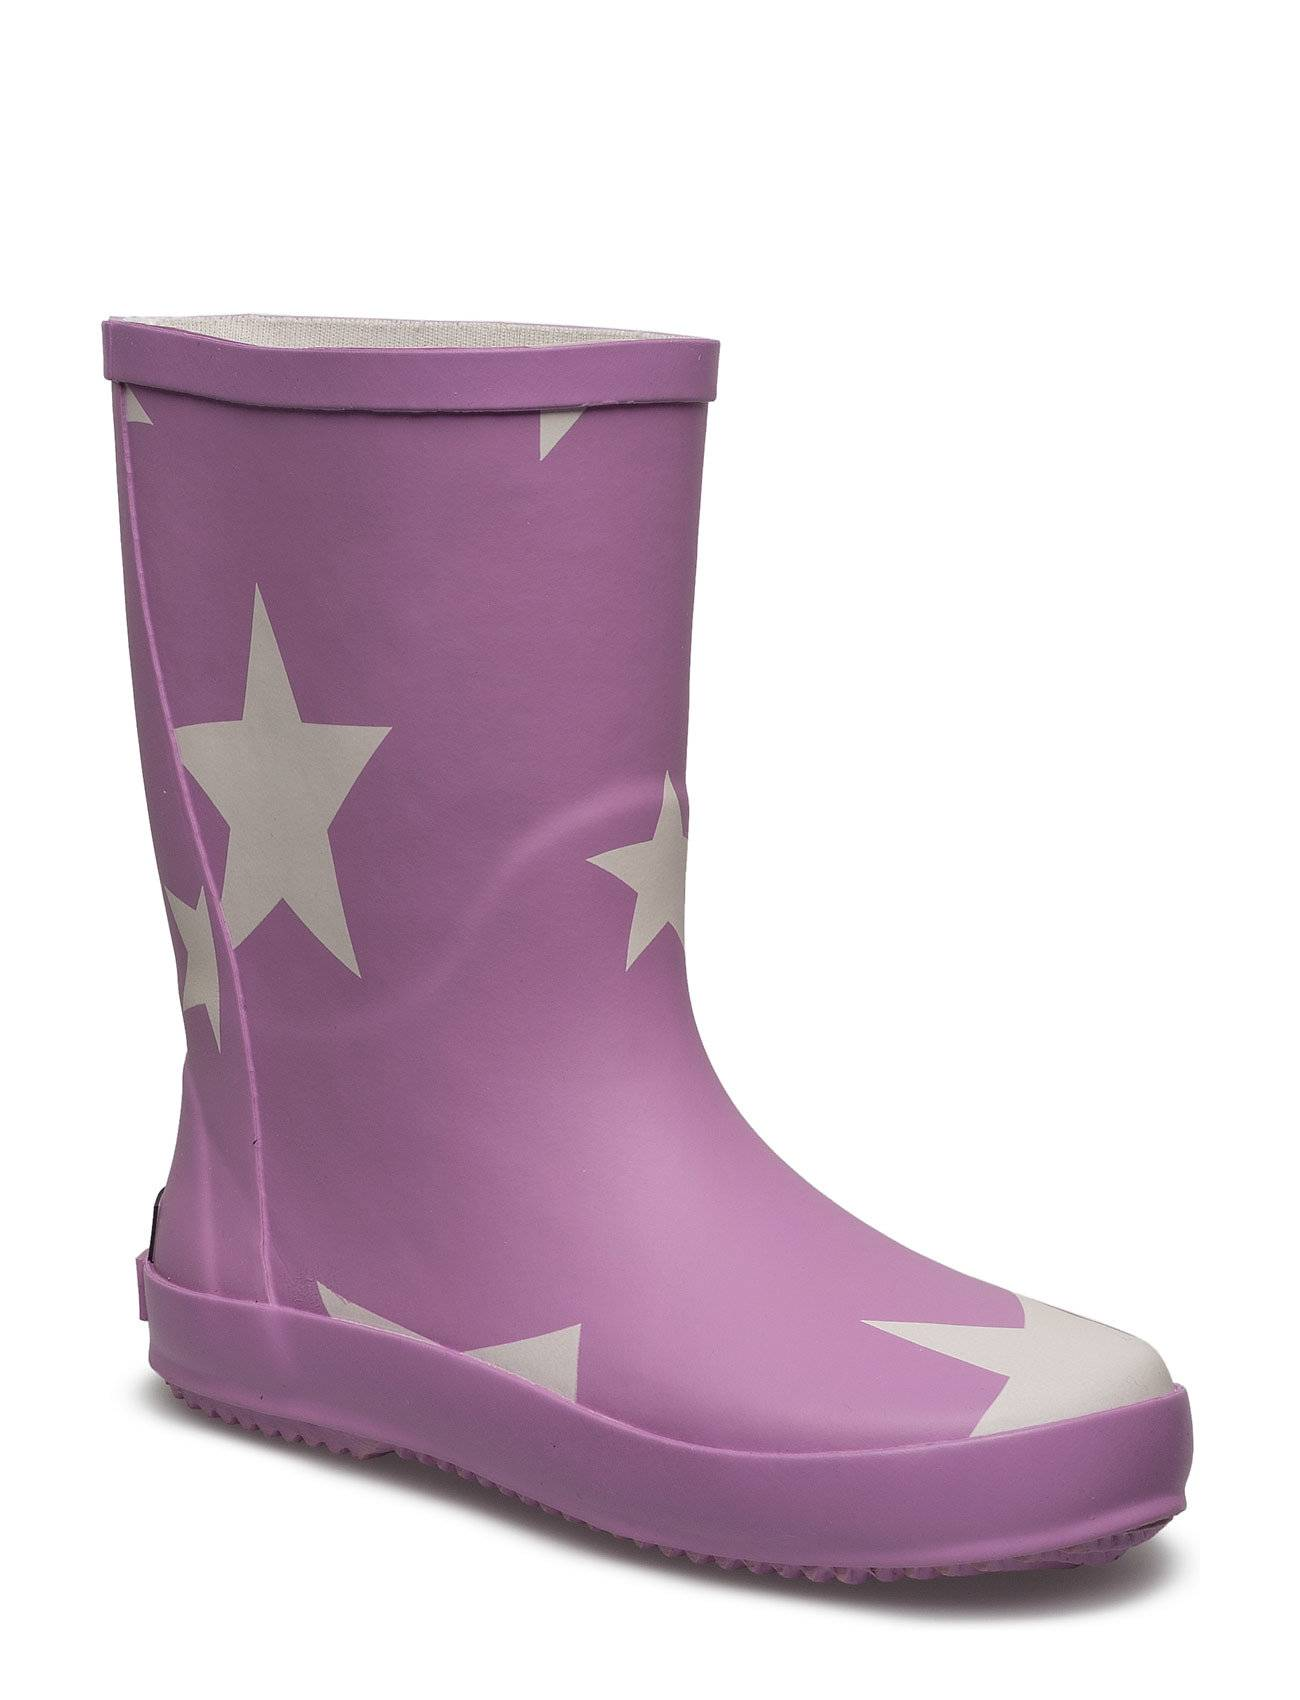 Ticket to Heaven Rubber Boots Allover